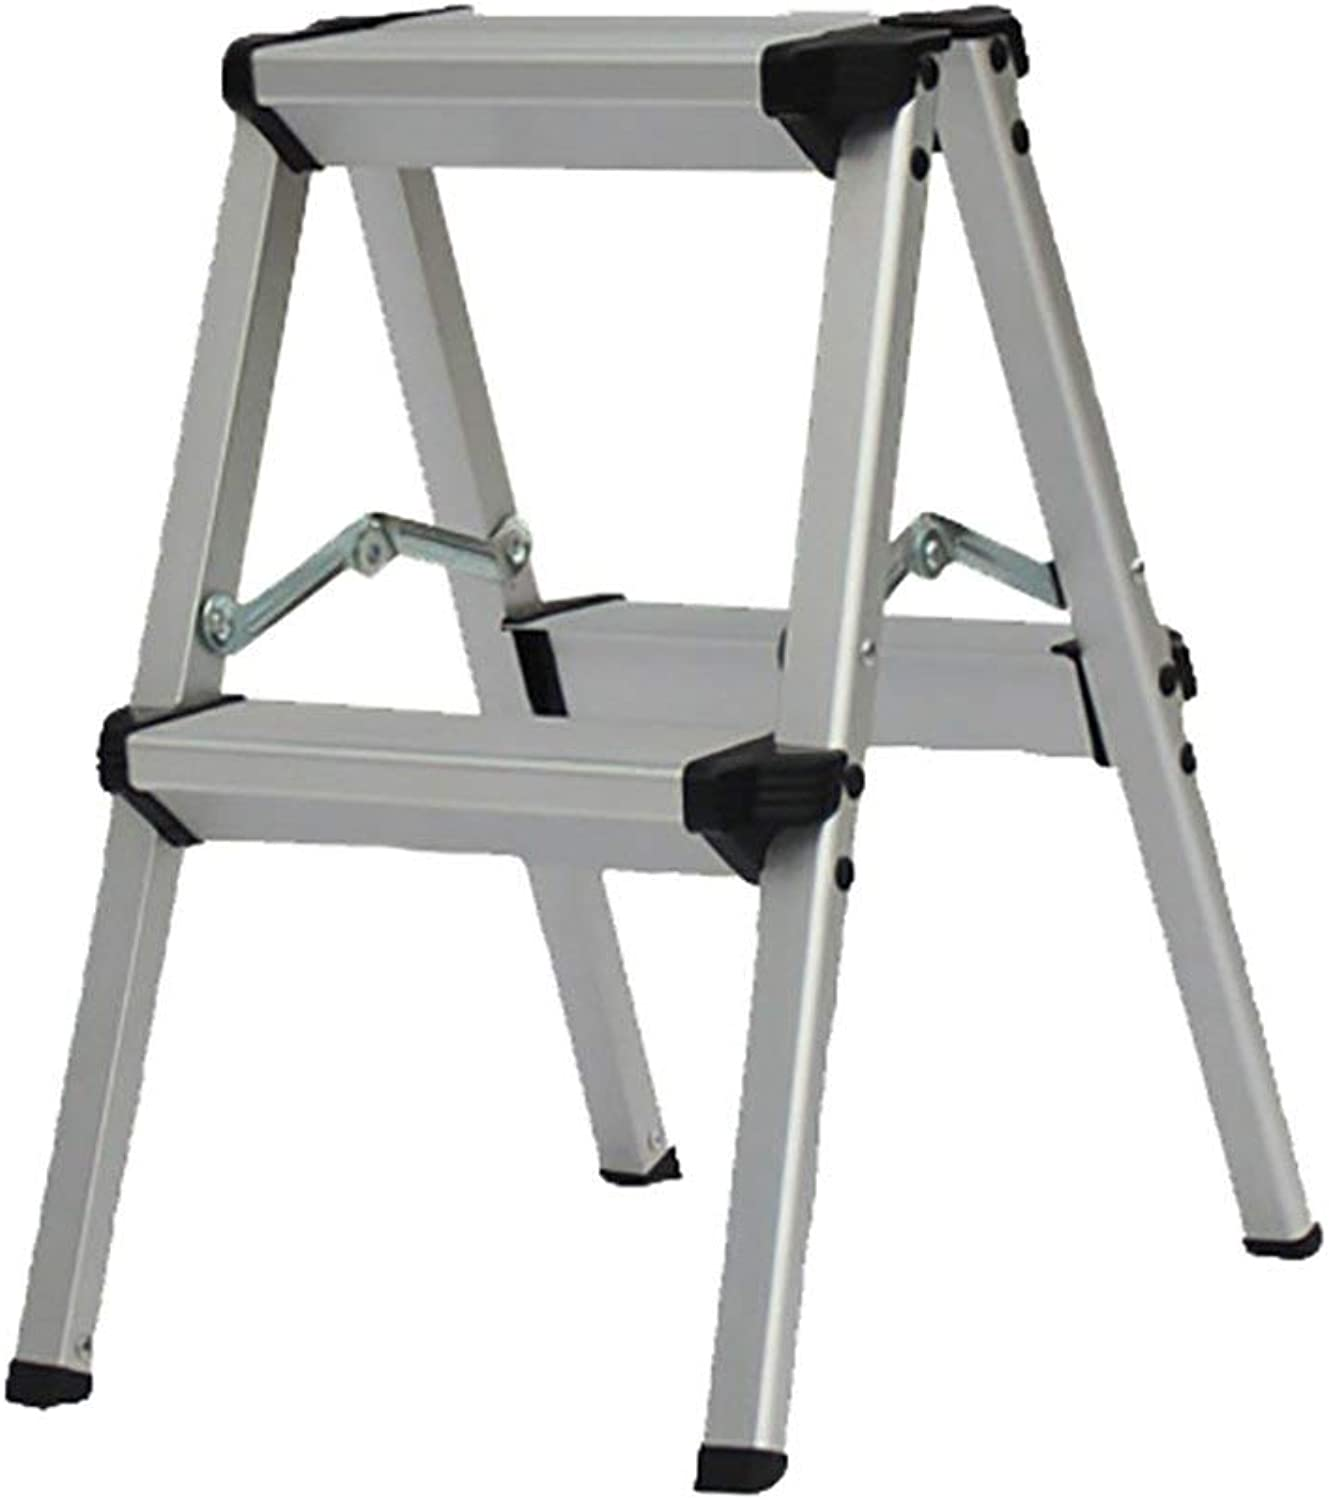 SEBAS HOME Home folding two-step ladder aluminum alloy extension ladder multi-purpose engineering ladder stool. - step stool (color   Black, Size   2-step)